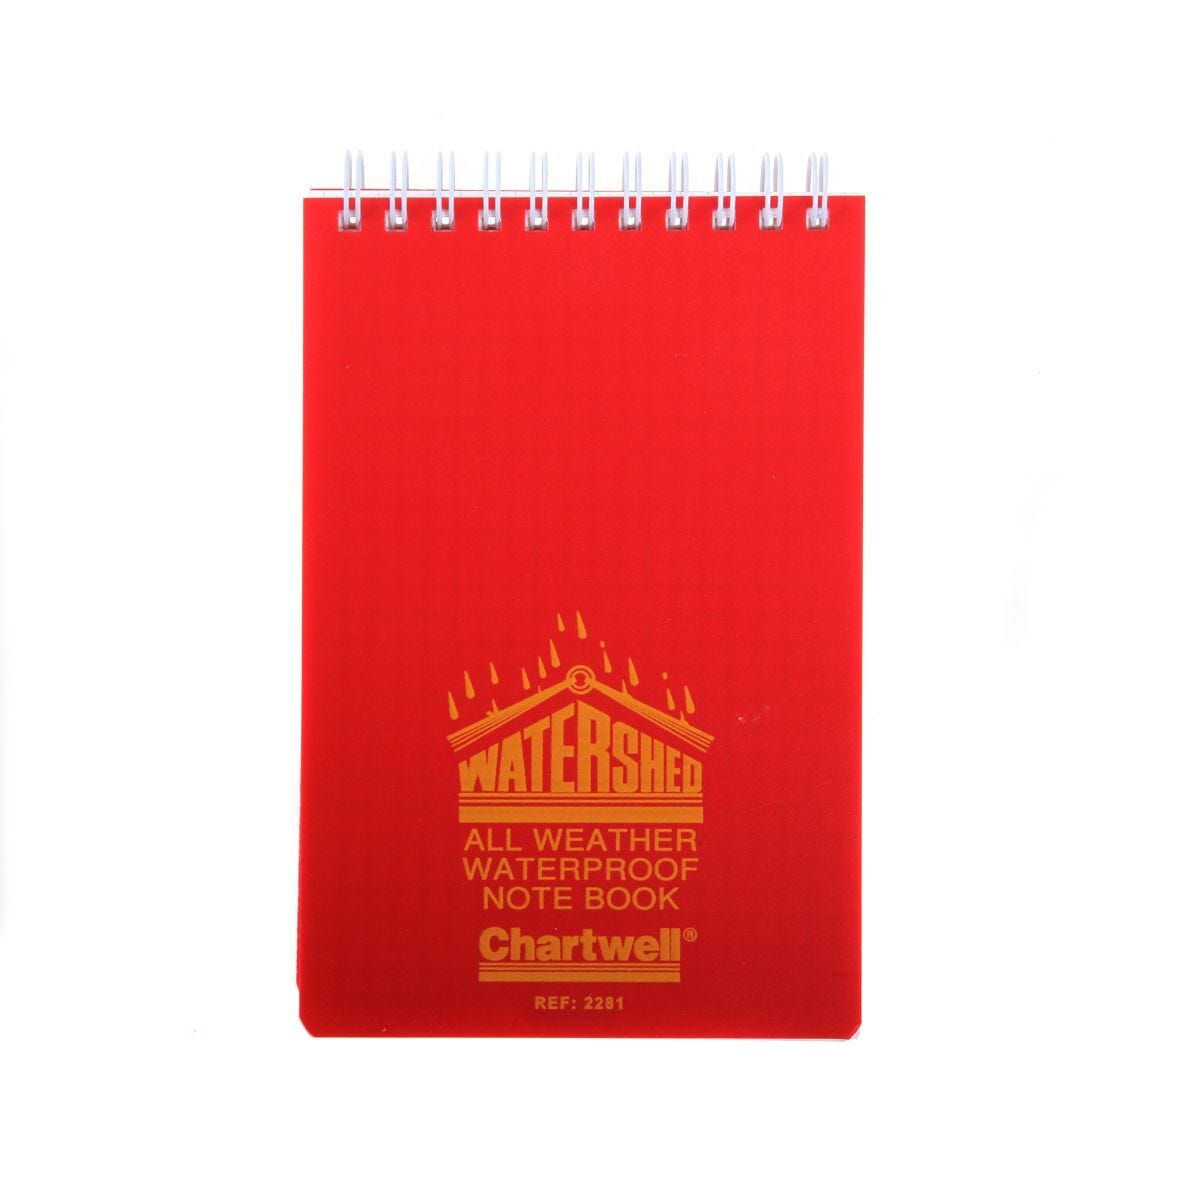 Chartwell Watershed Waterproof Ruled Notebook 156x101mm